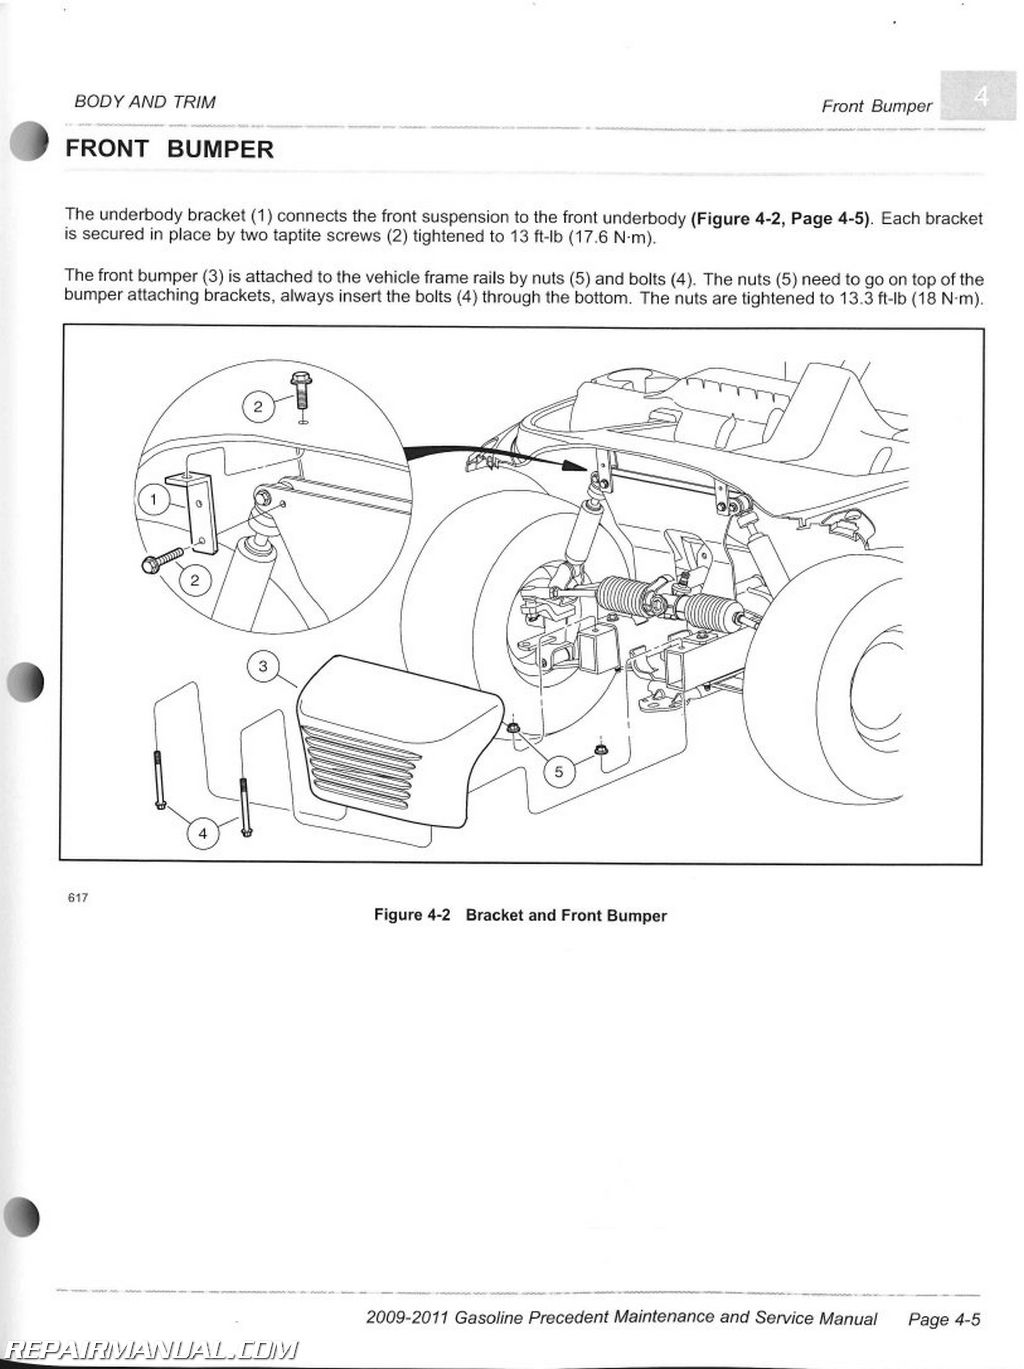 Club Car Transporter Wiring Diagram | Wiring Liry Golf Car Wiring Diagram on 2009 club car wiring diagram, golf car repair manual, nhra car wiring diagram, golf cart wiring diagram, par car wiring diagram, golf car steering, yamaha golf cart parts diagram, golf car motor diagram, club car solenoid wiring diagram, golf car parts, golf car battery diagram, golf car fuel system, 36 volt club car wiring diagram, club car headlight wiring diagram, club car light wiring diagram,